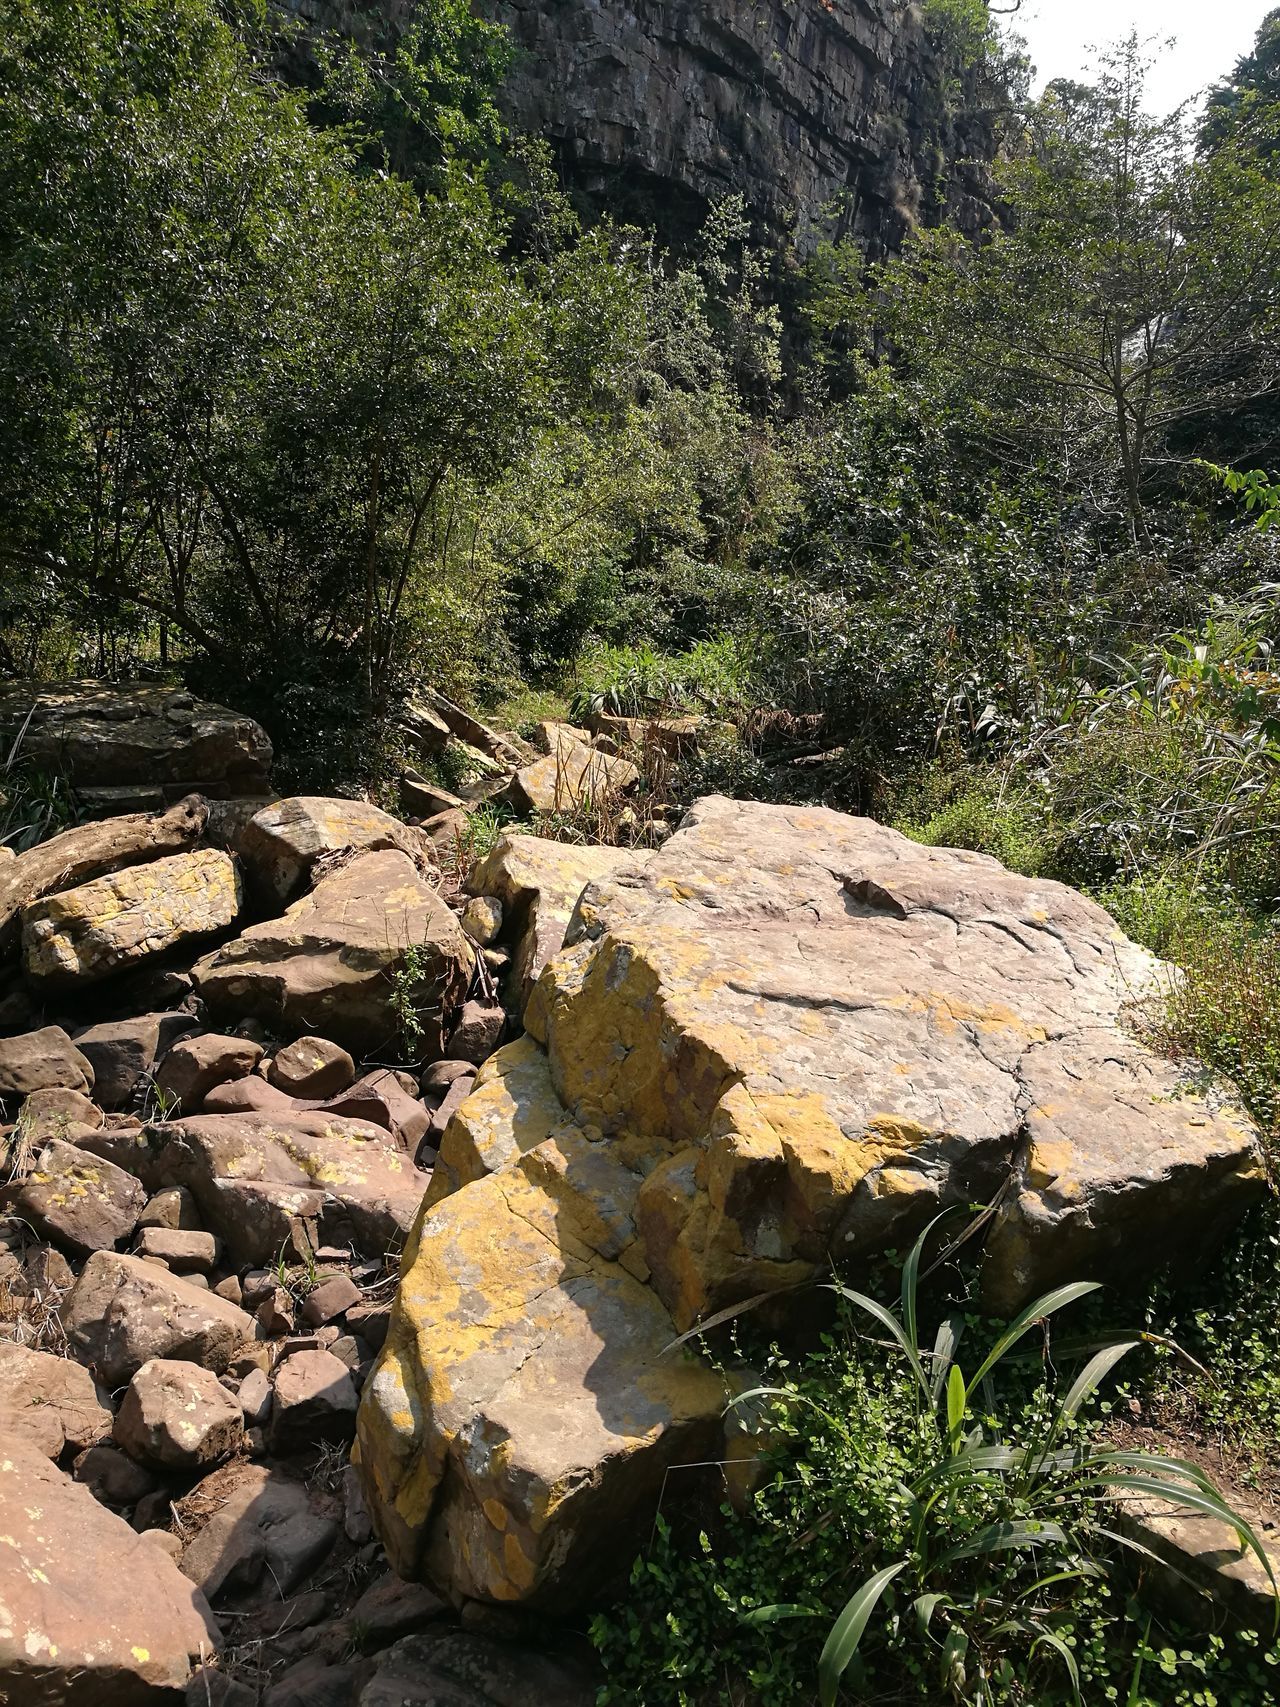 Natural Rockery Nature Rock - Object Growth Plant Non-urban Scene Day Field Beauty In Nature Tranquility Tranquil Scene Outdoors Scenics Stone Rock Formation No People Fragility Remote Durban,Outer West Kwazulu Natal